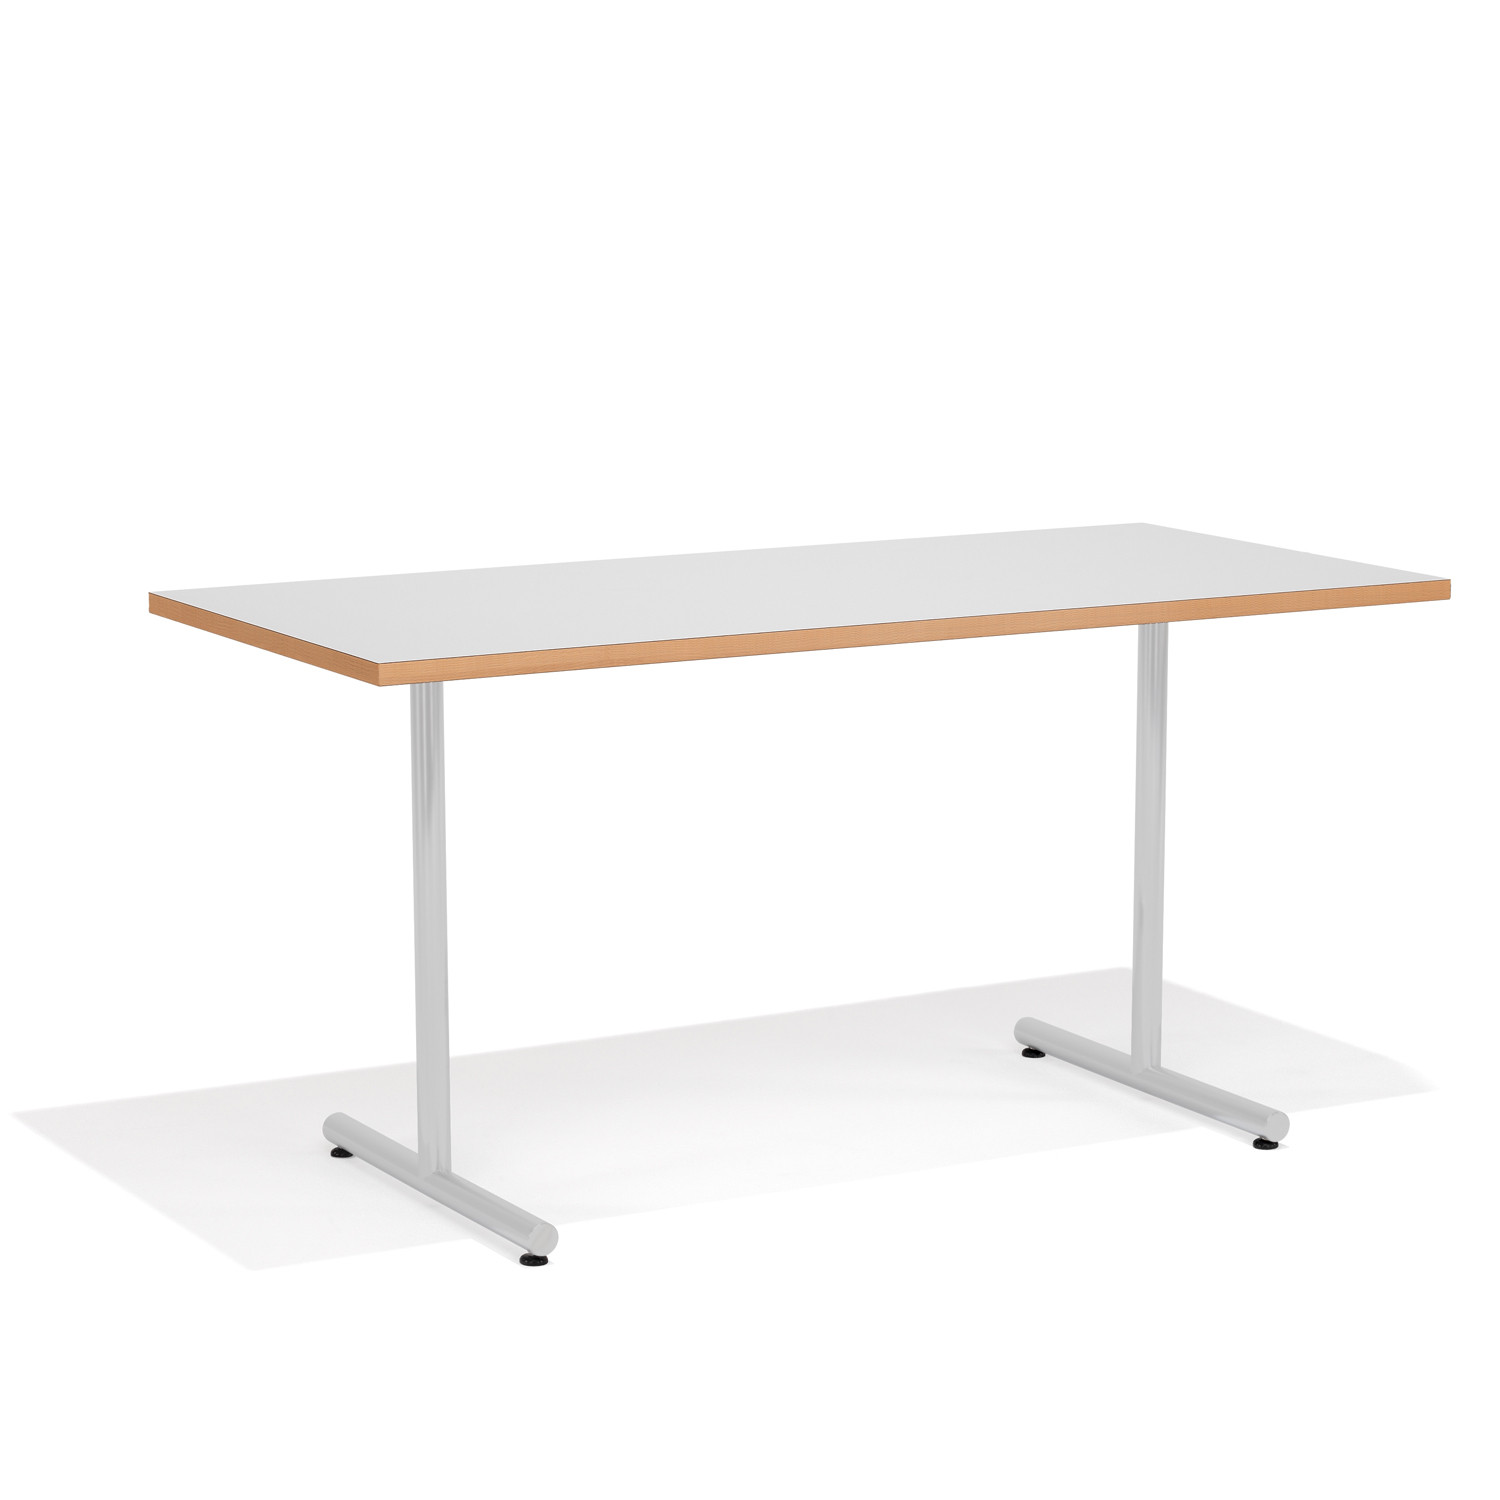 4000 Delgado Multipurpose Table